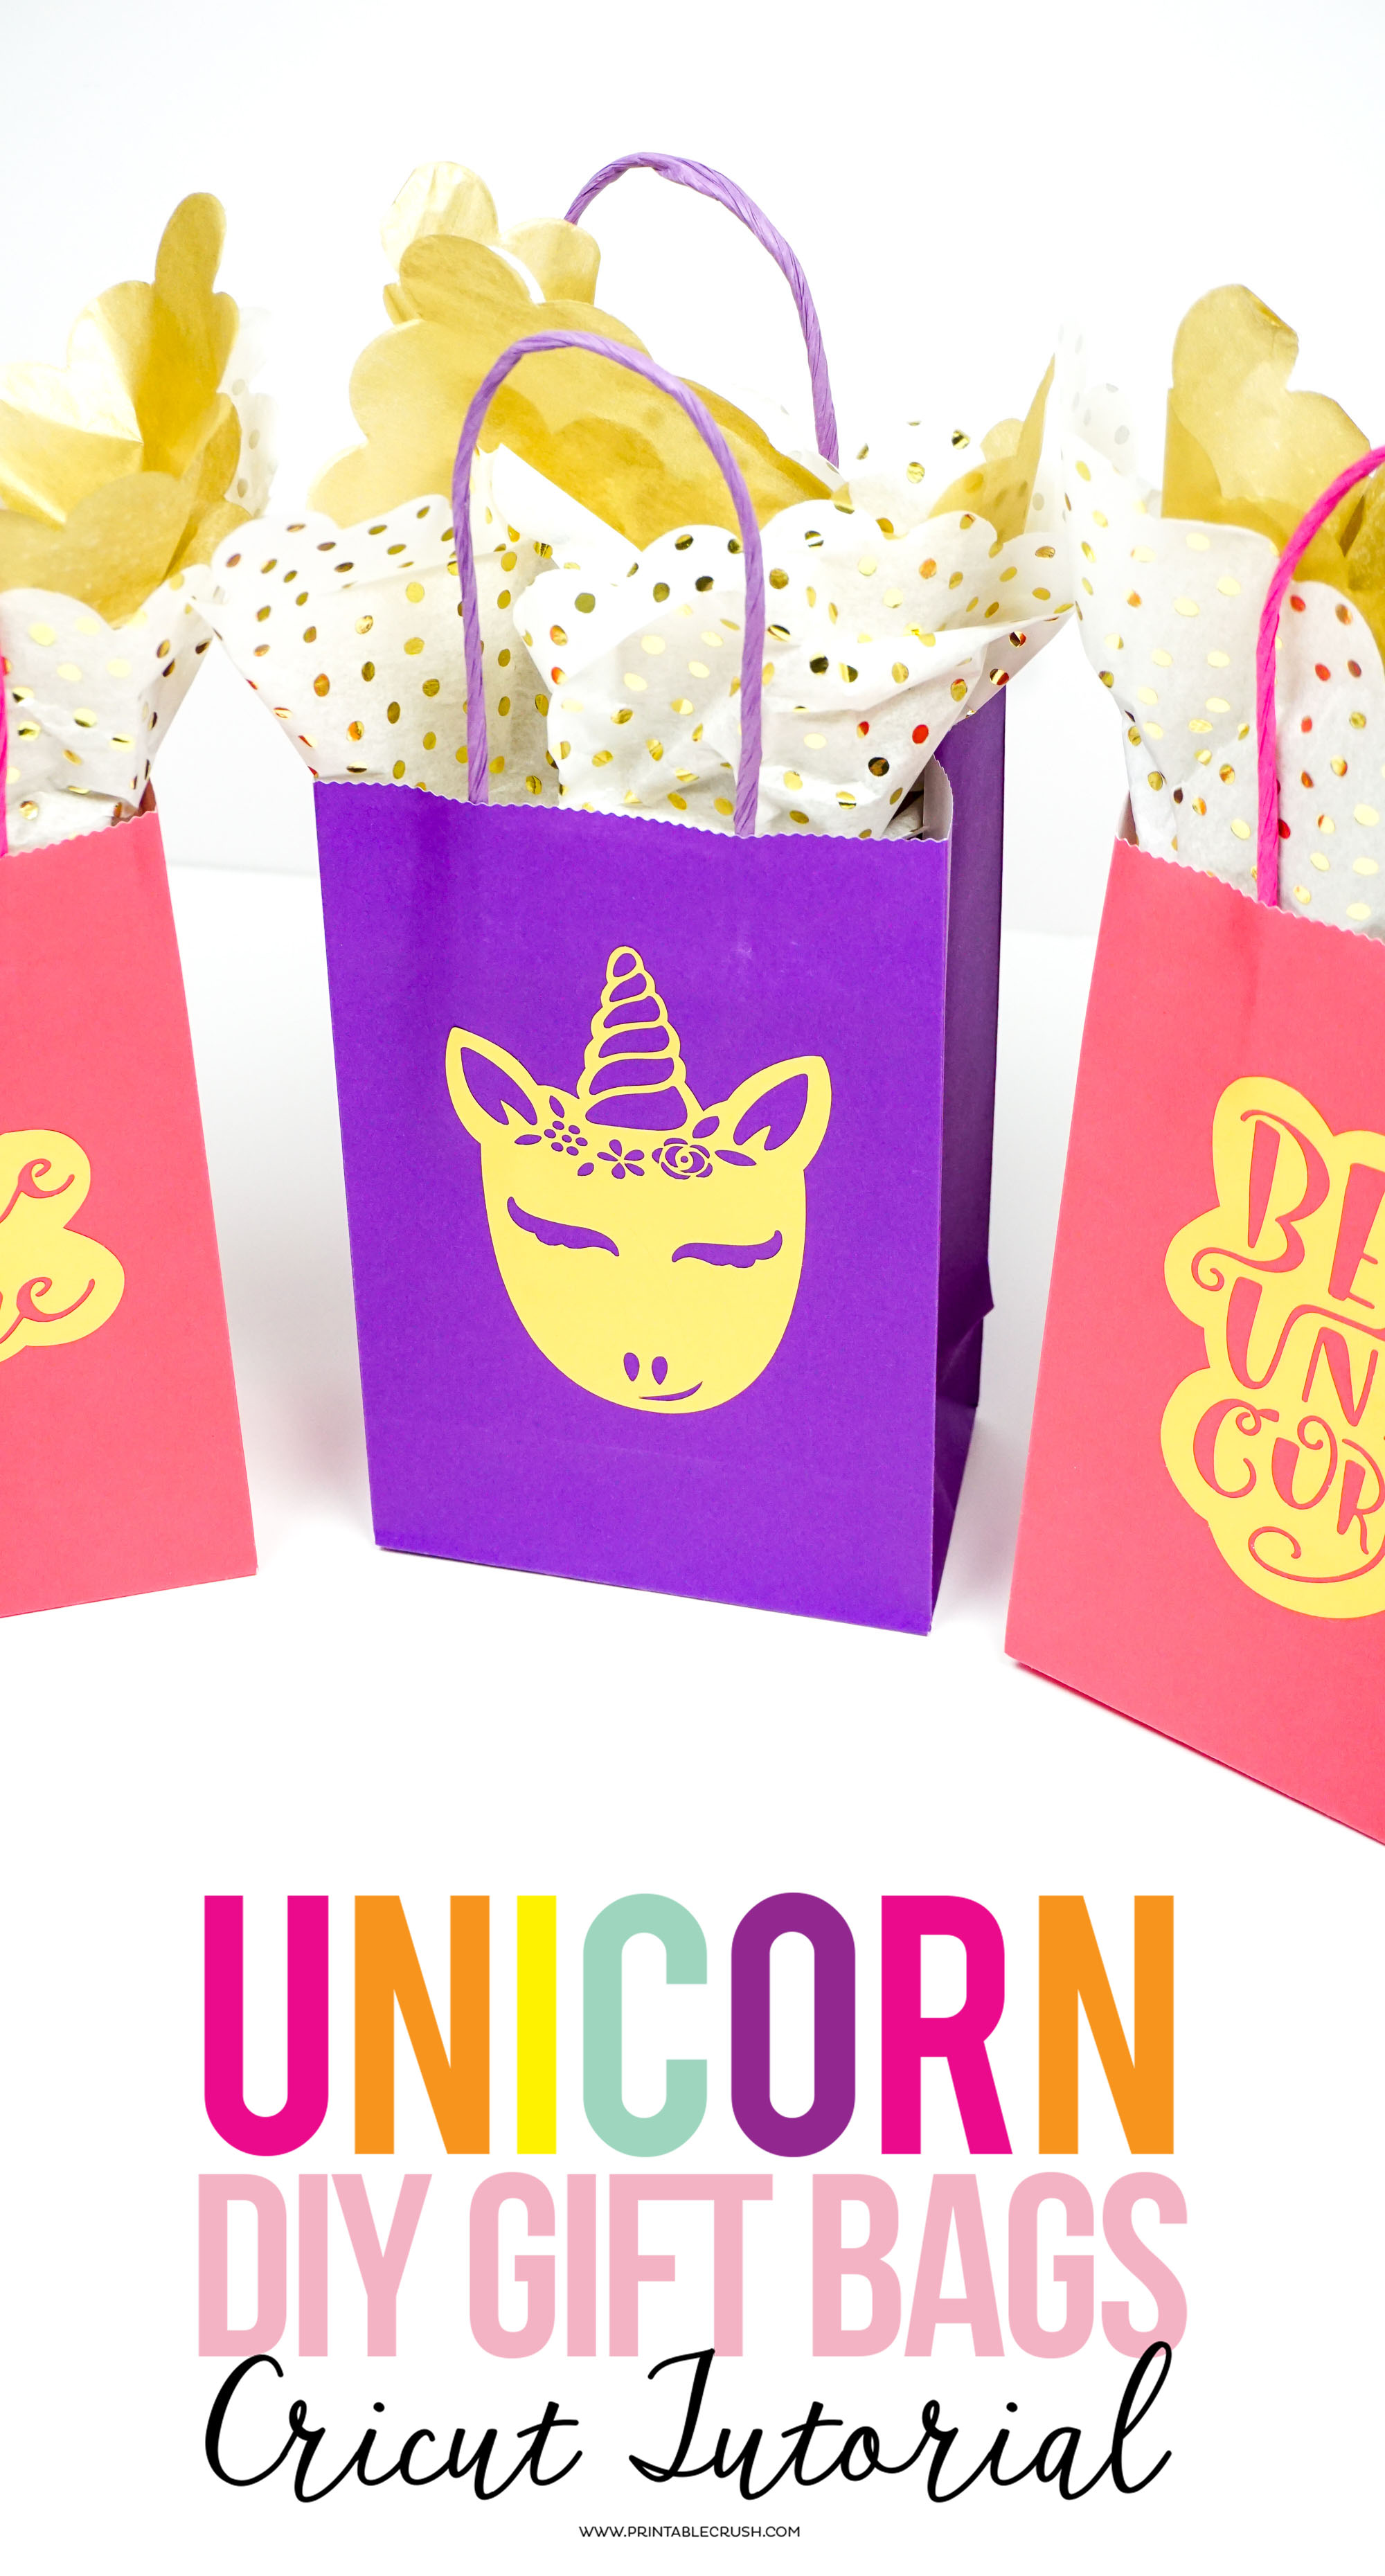 TheseGold Foil DIY Unicorn Gift Bags add a personal touch to birthday parties. Use them for party favors, teacher gifts, birthday gifts, and more!